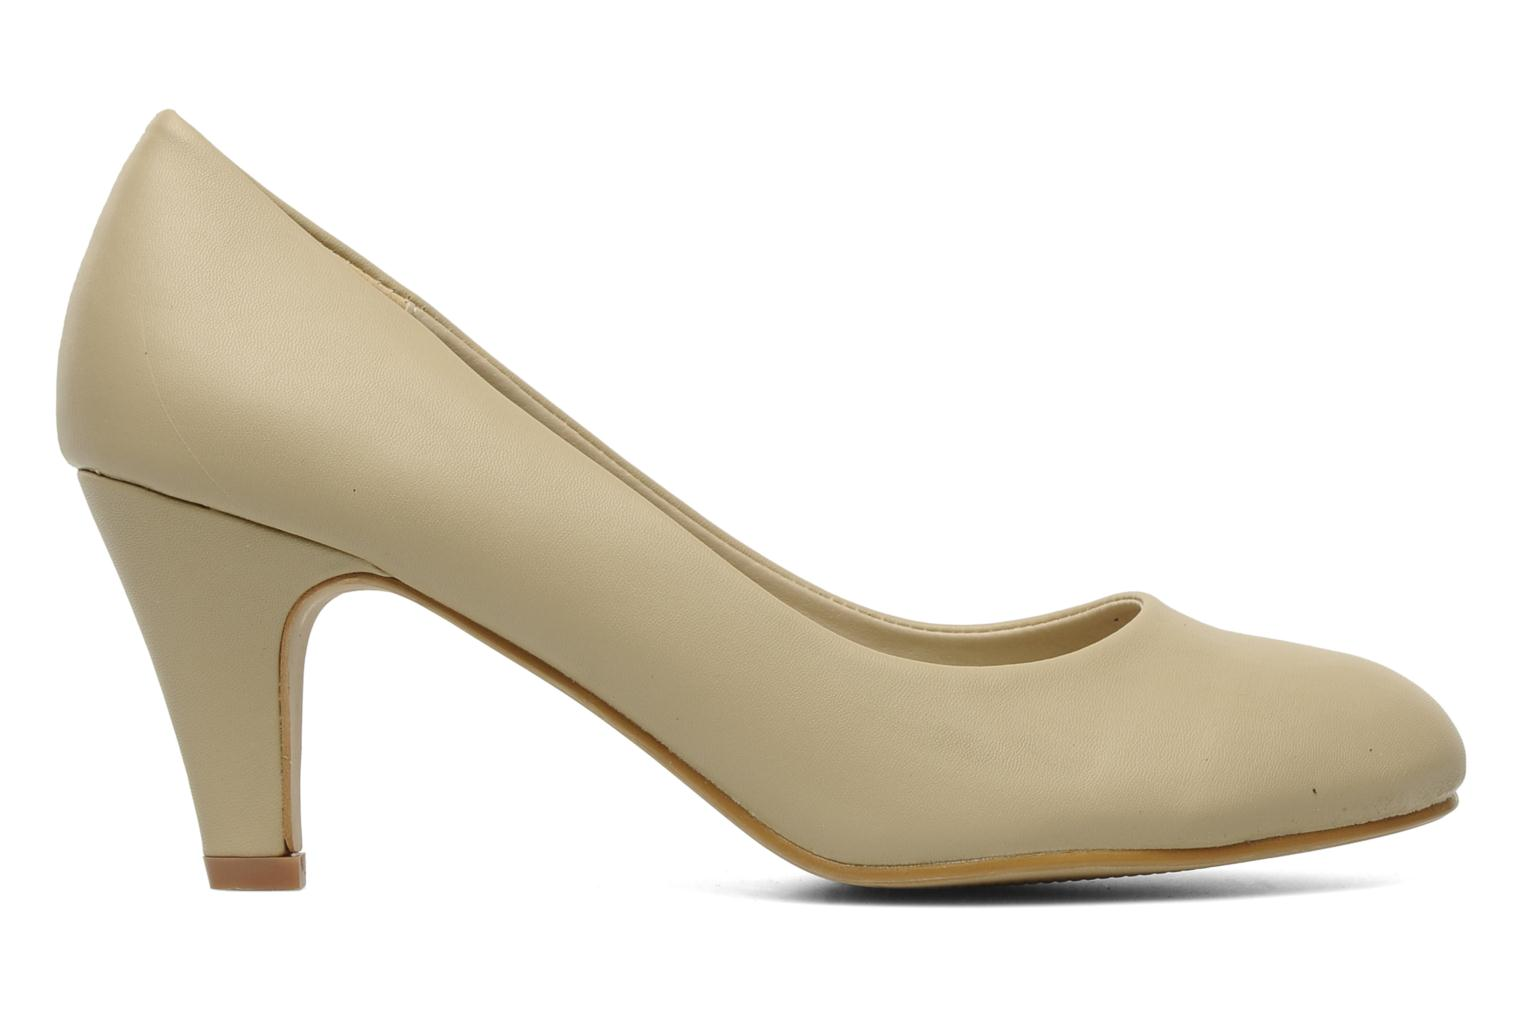 Pumps Eclipse Escarpin Moyen Talon Beige achterkant